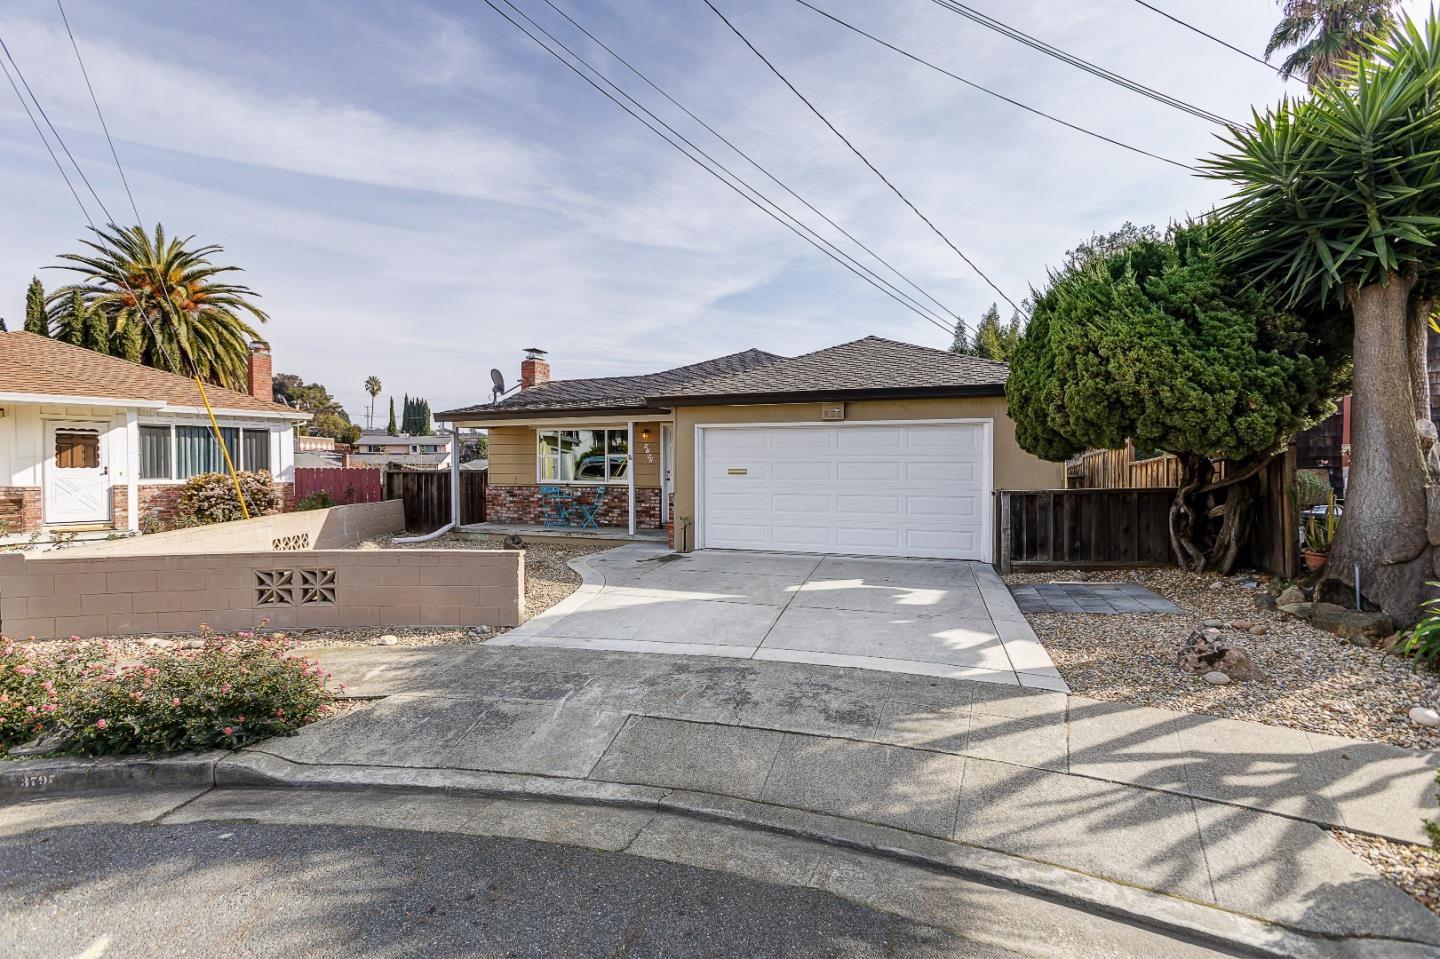 Single Family Home for Sale at 3797 Almond Court 3797 Almond Court Castro Valley, California 94546 United States